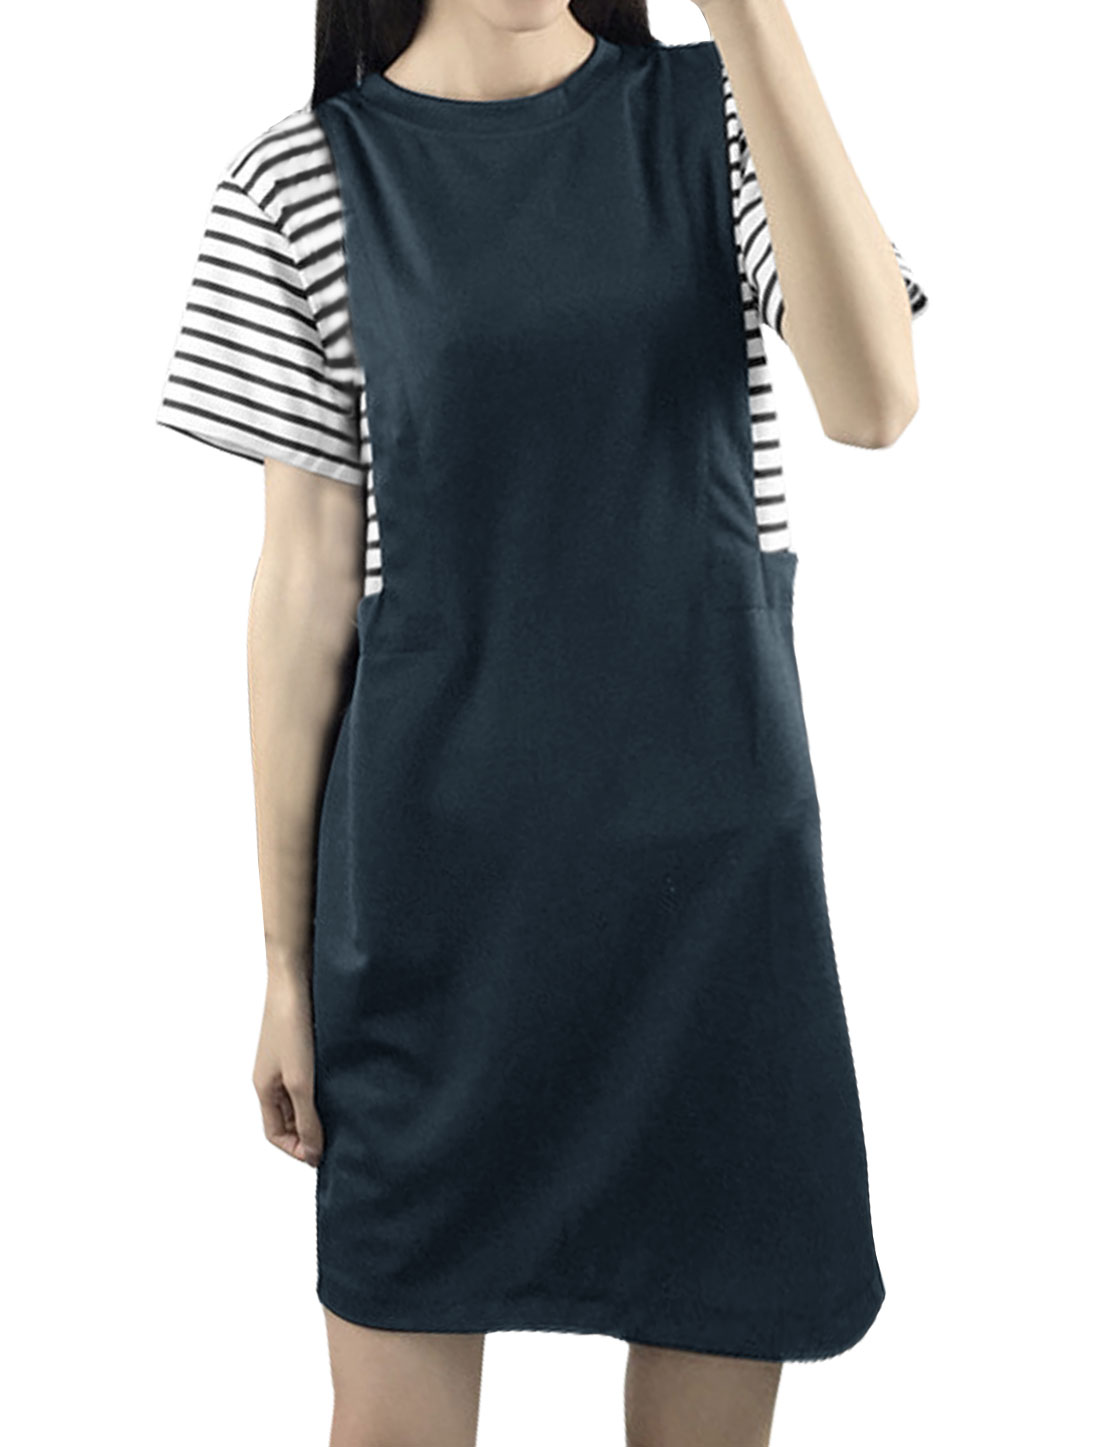 Women Short Sleeves Crew Neck Stripes Paneled Shift Dress Blue S